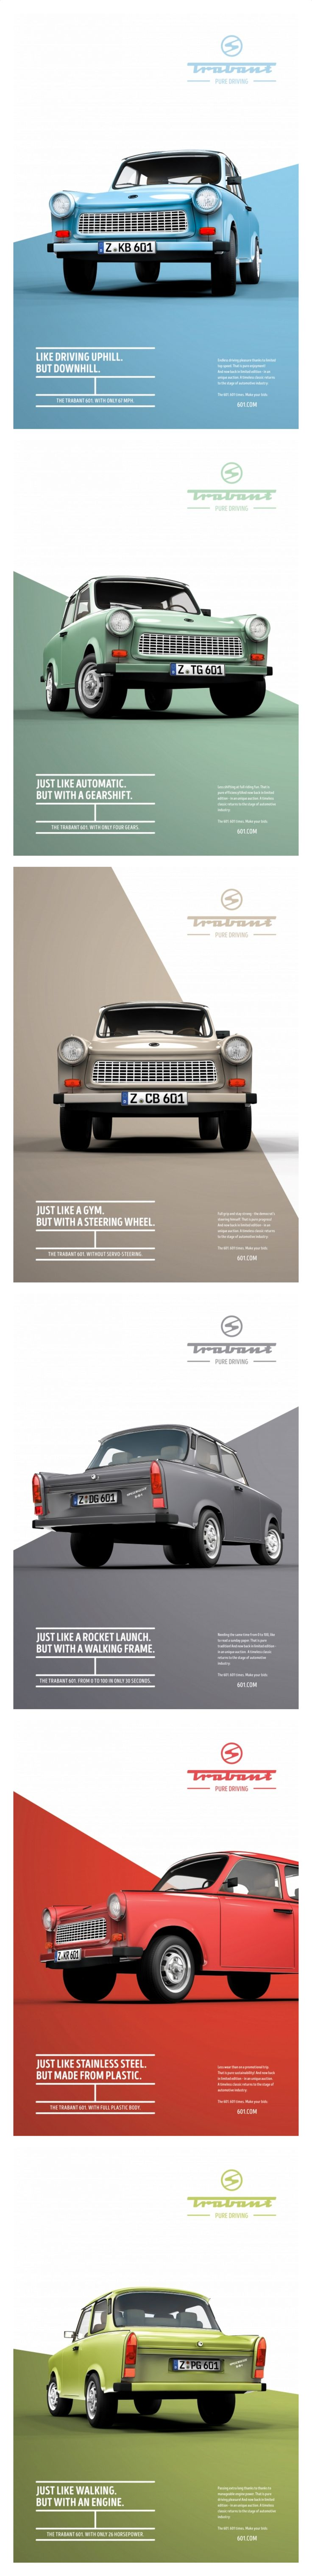 Parts of a poster design - Trabant 601 Pure Driving Design By Institute Of Design D Sseldorf Germany